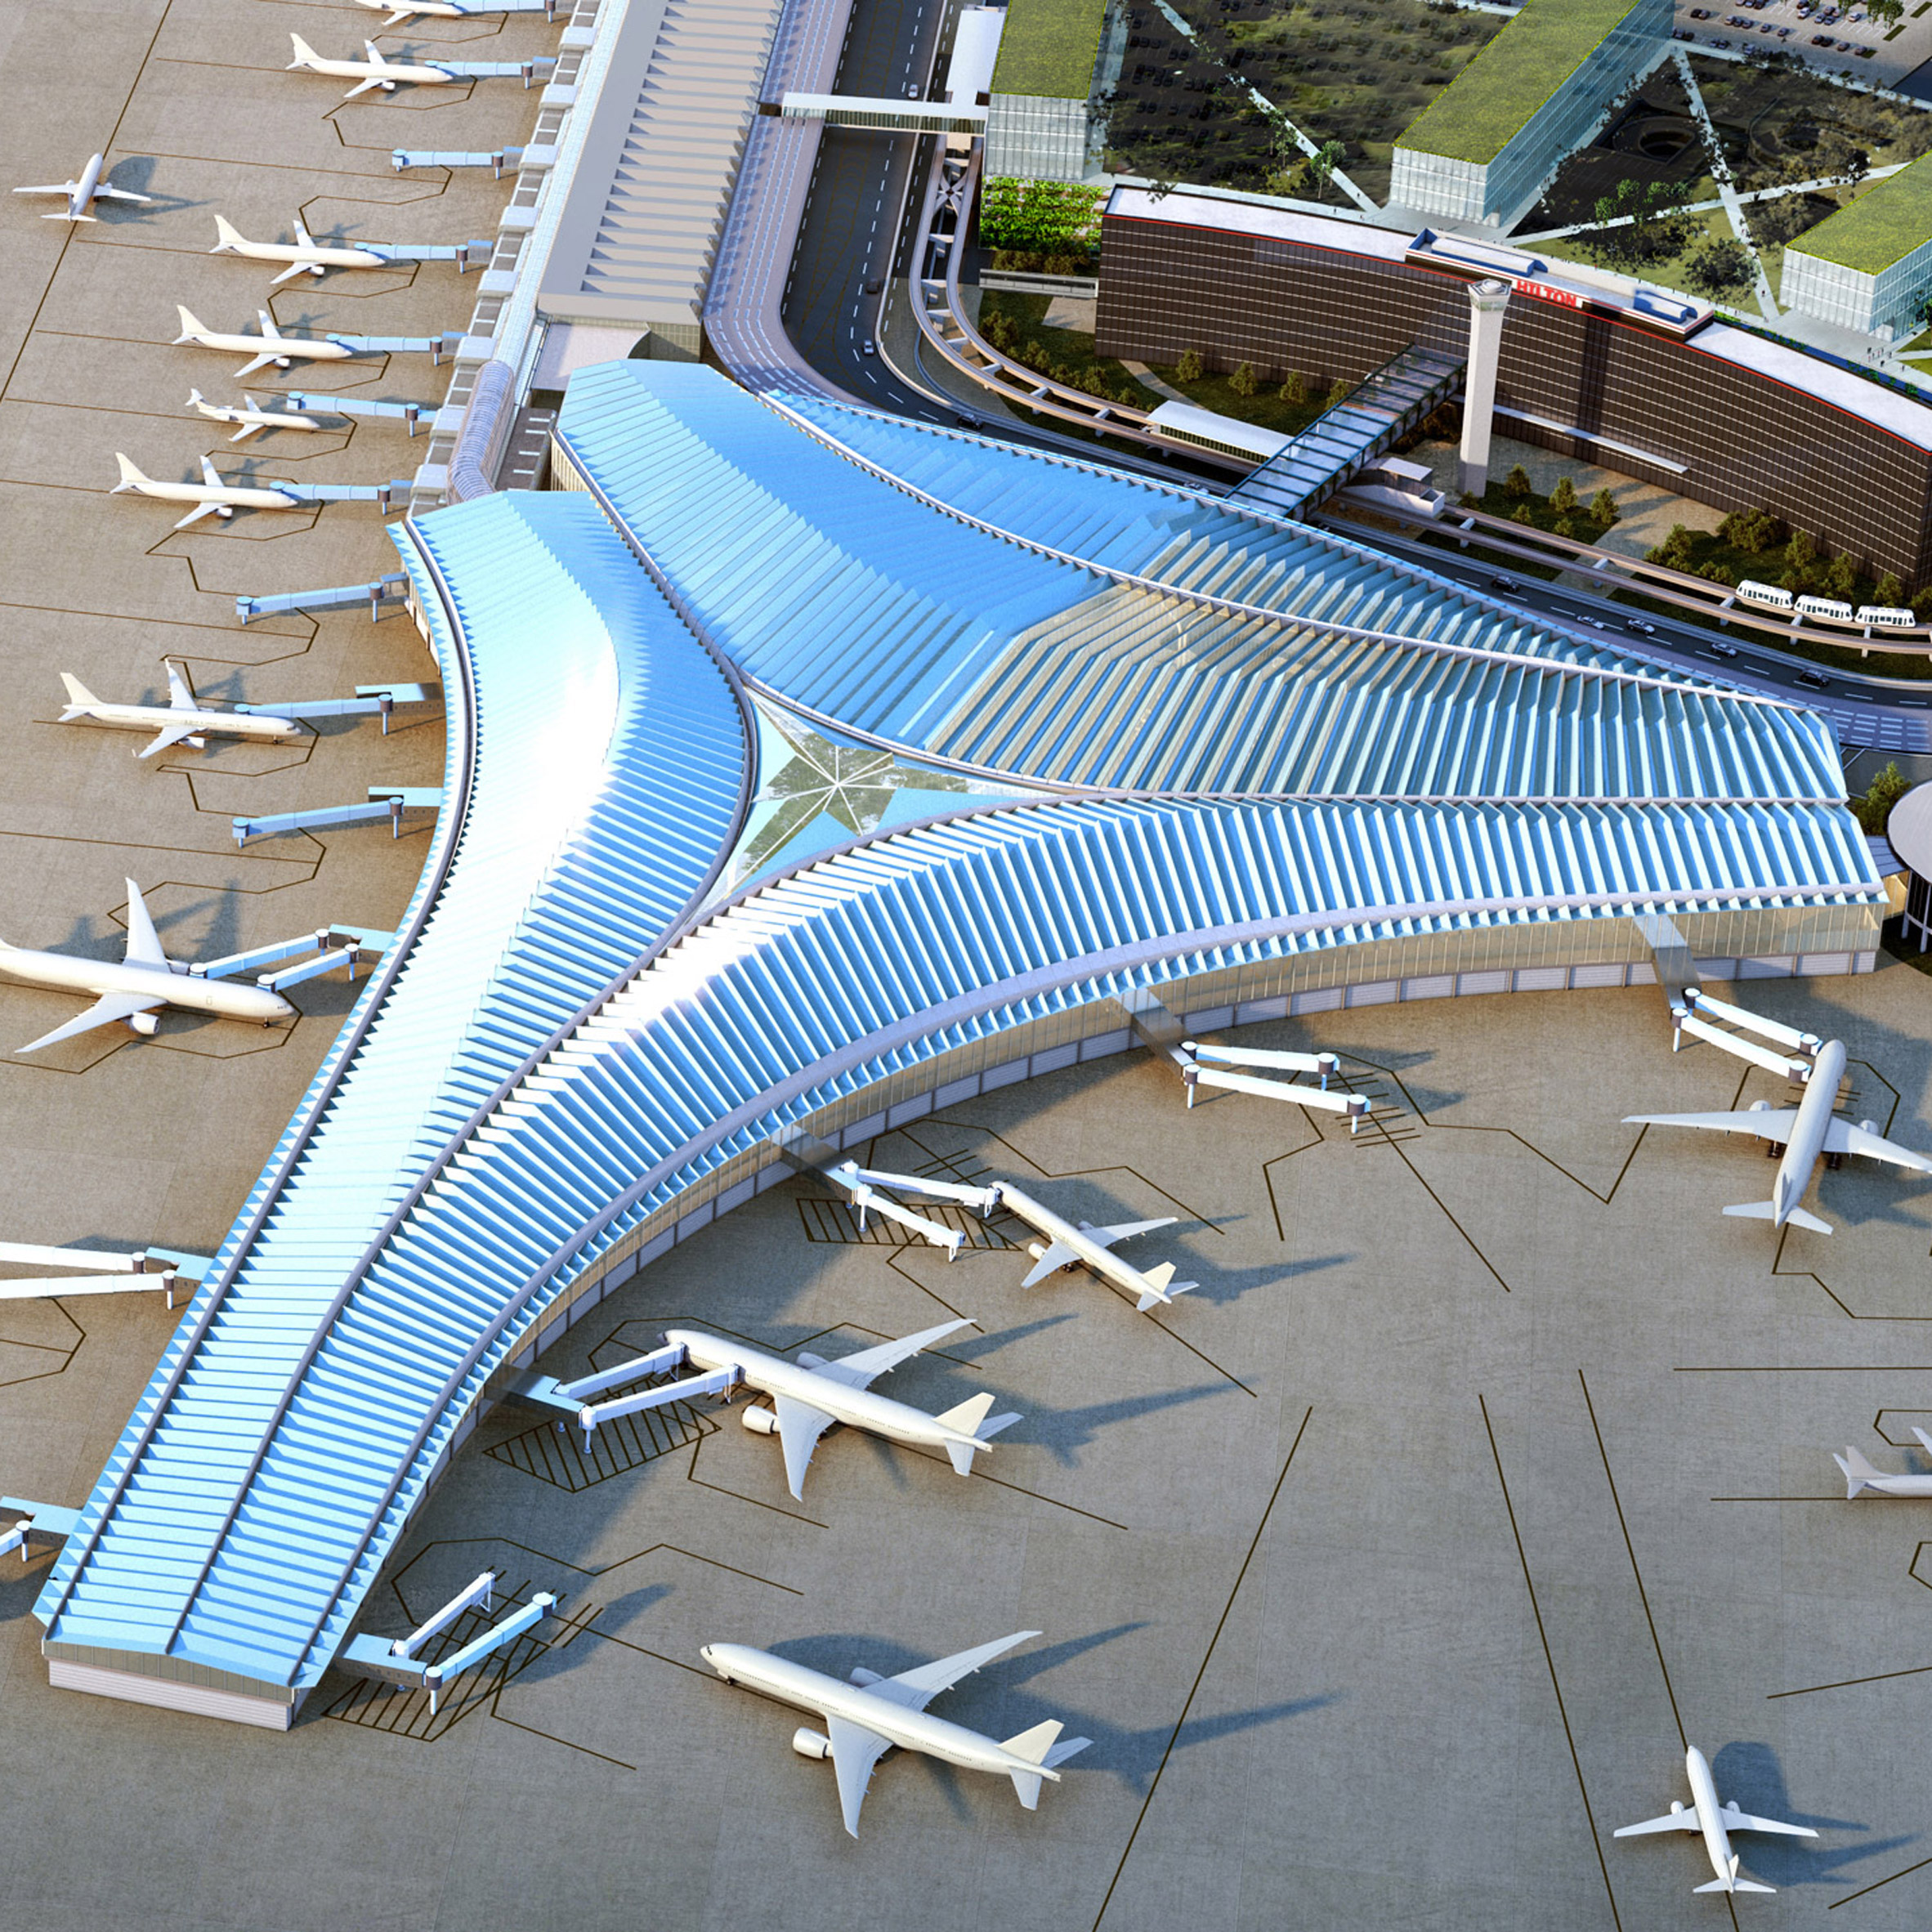 Studio Gang Wins Bid For New Chicago O'Hare Airport